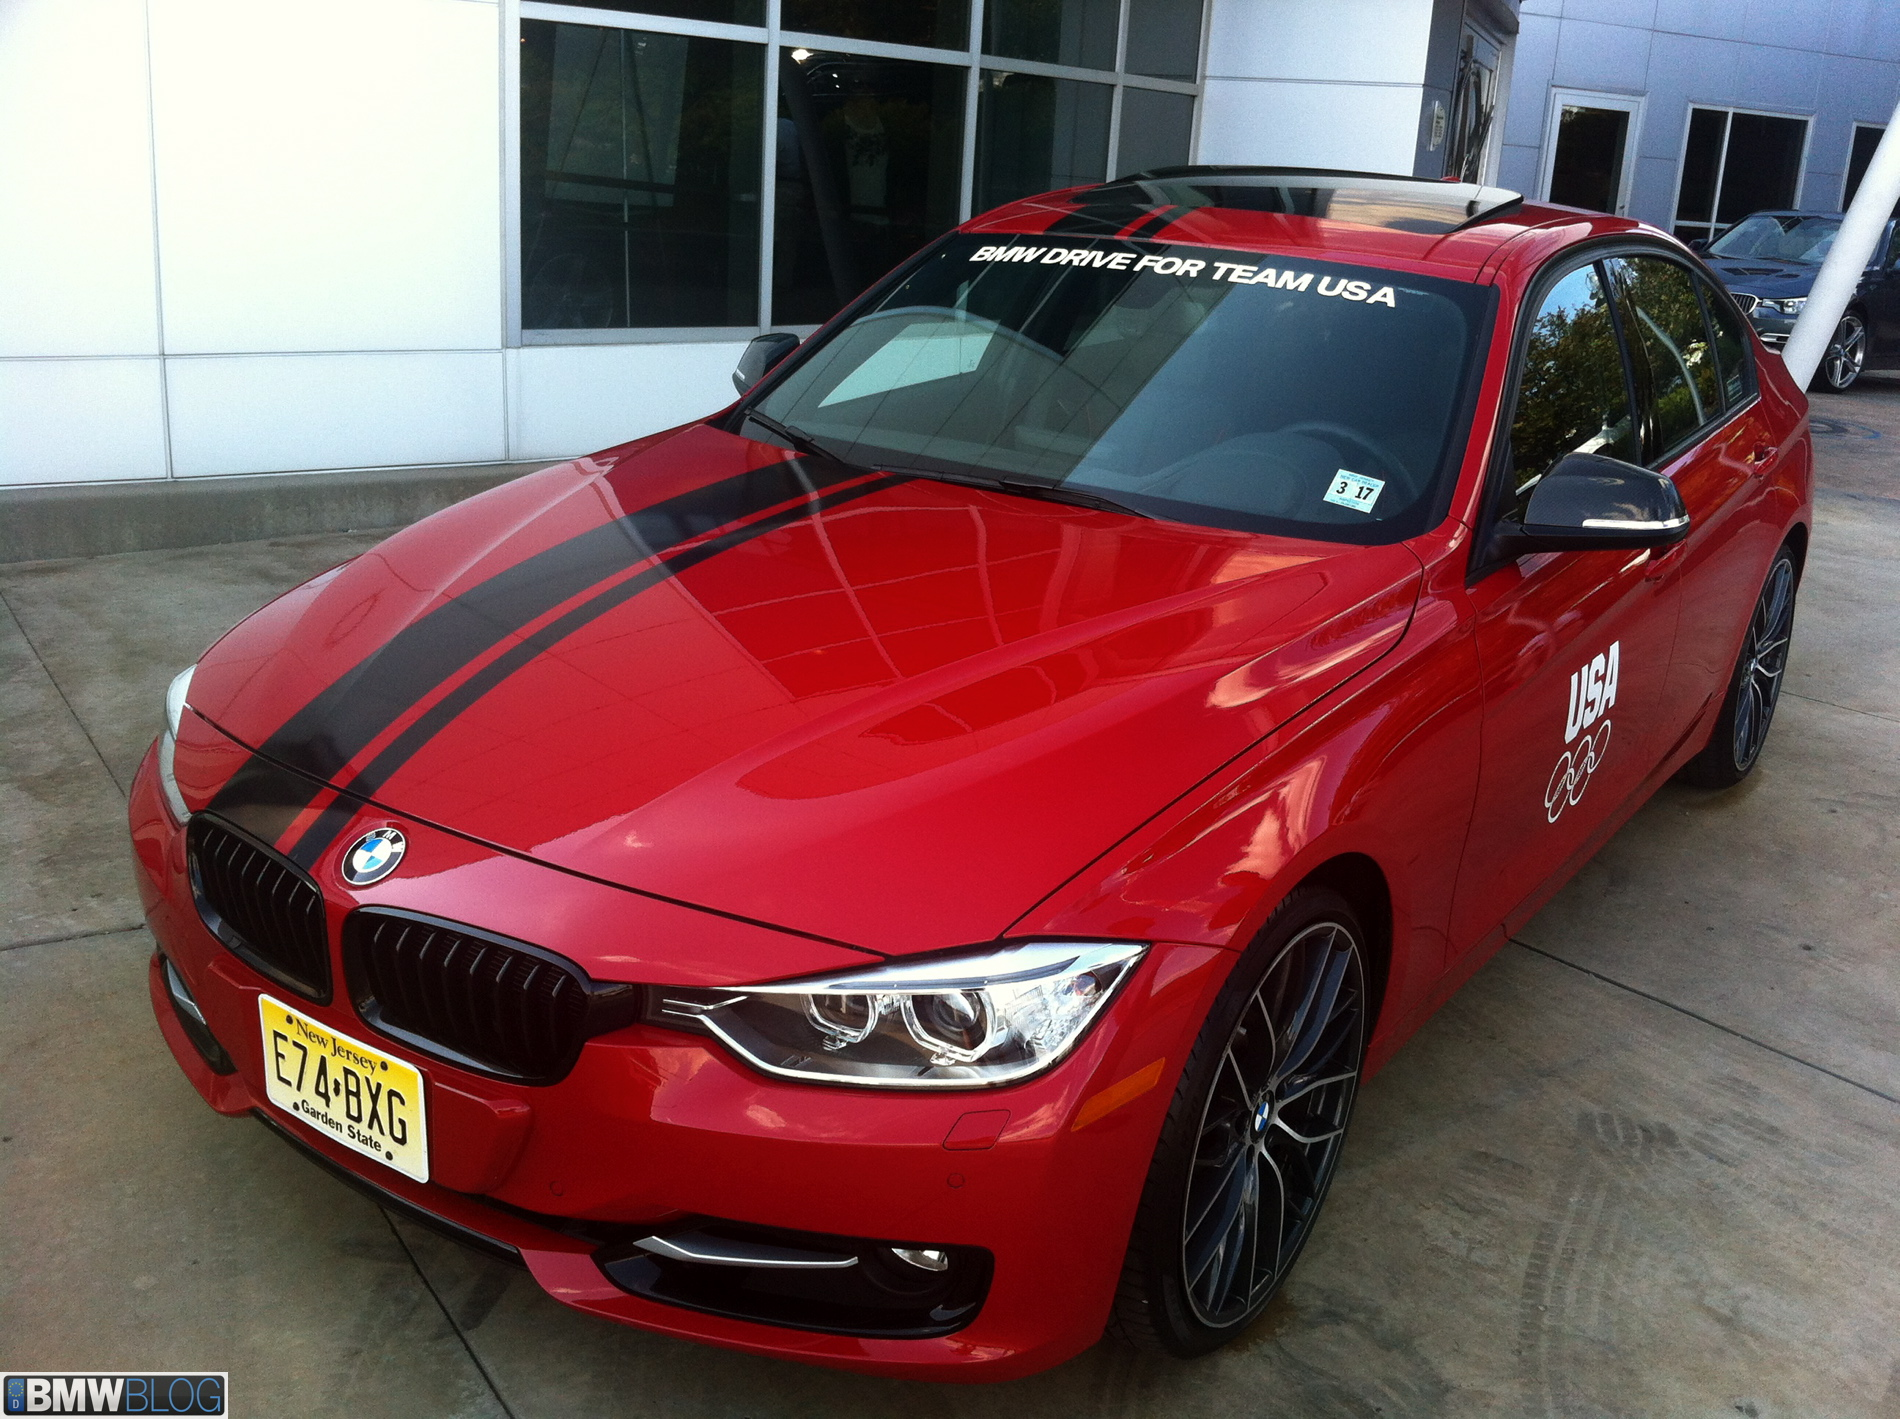 Bmwblog Attends Bmw Drive For Team Usa Bmw North America